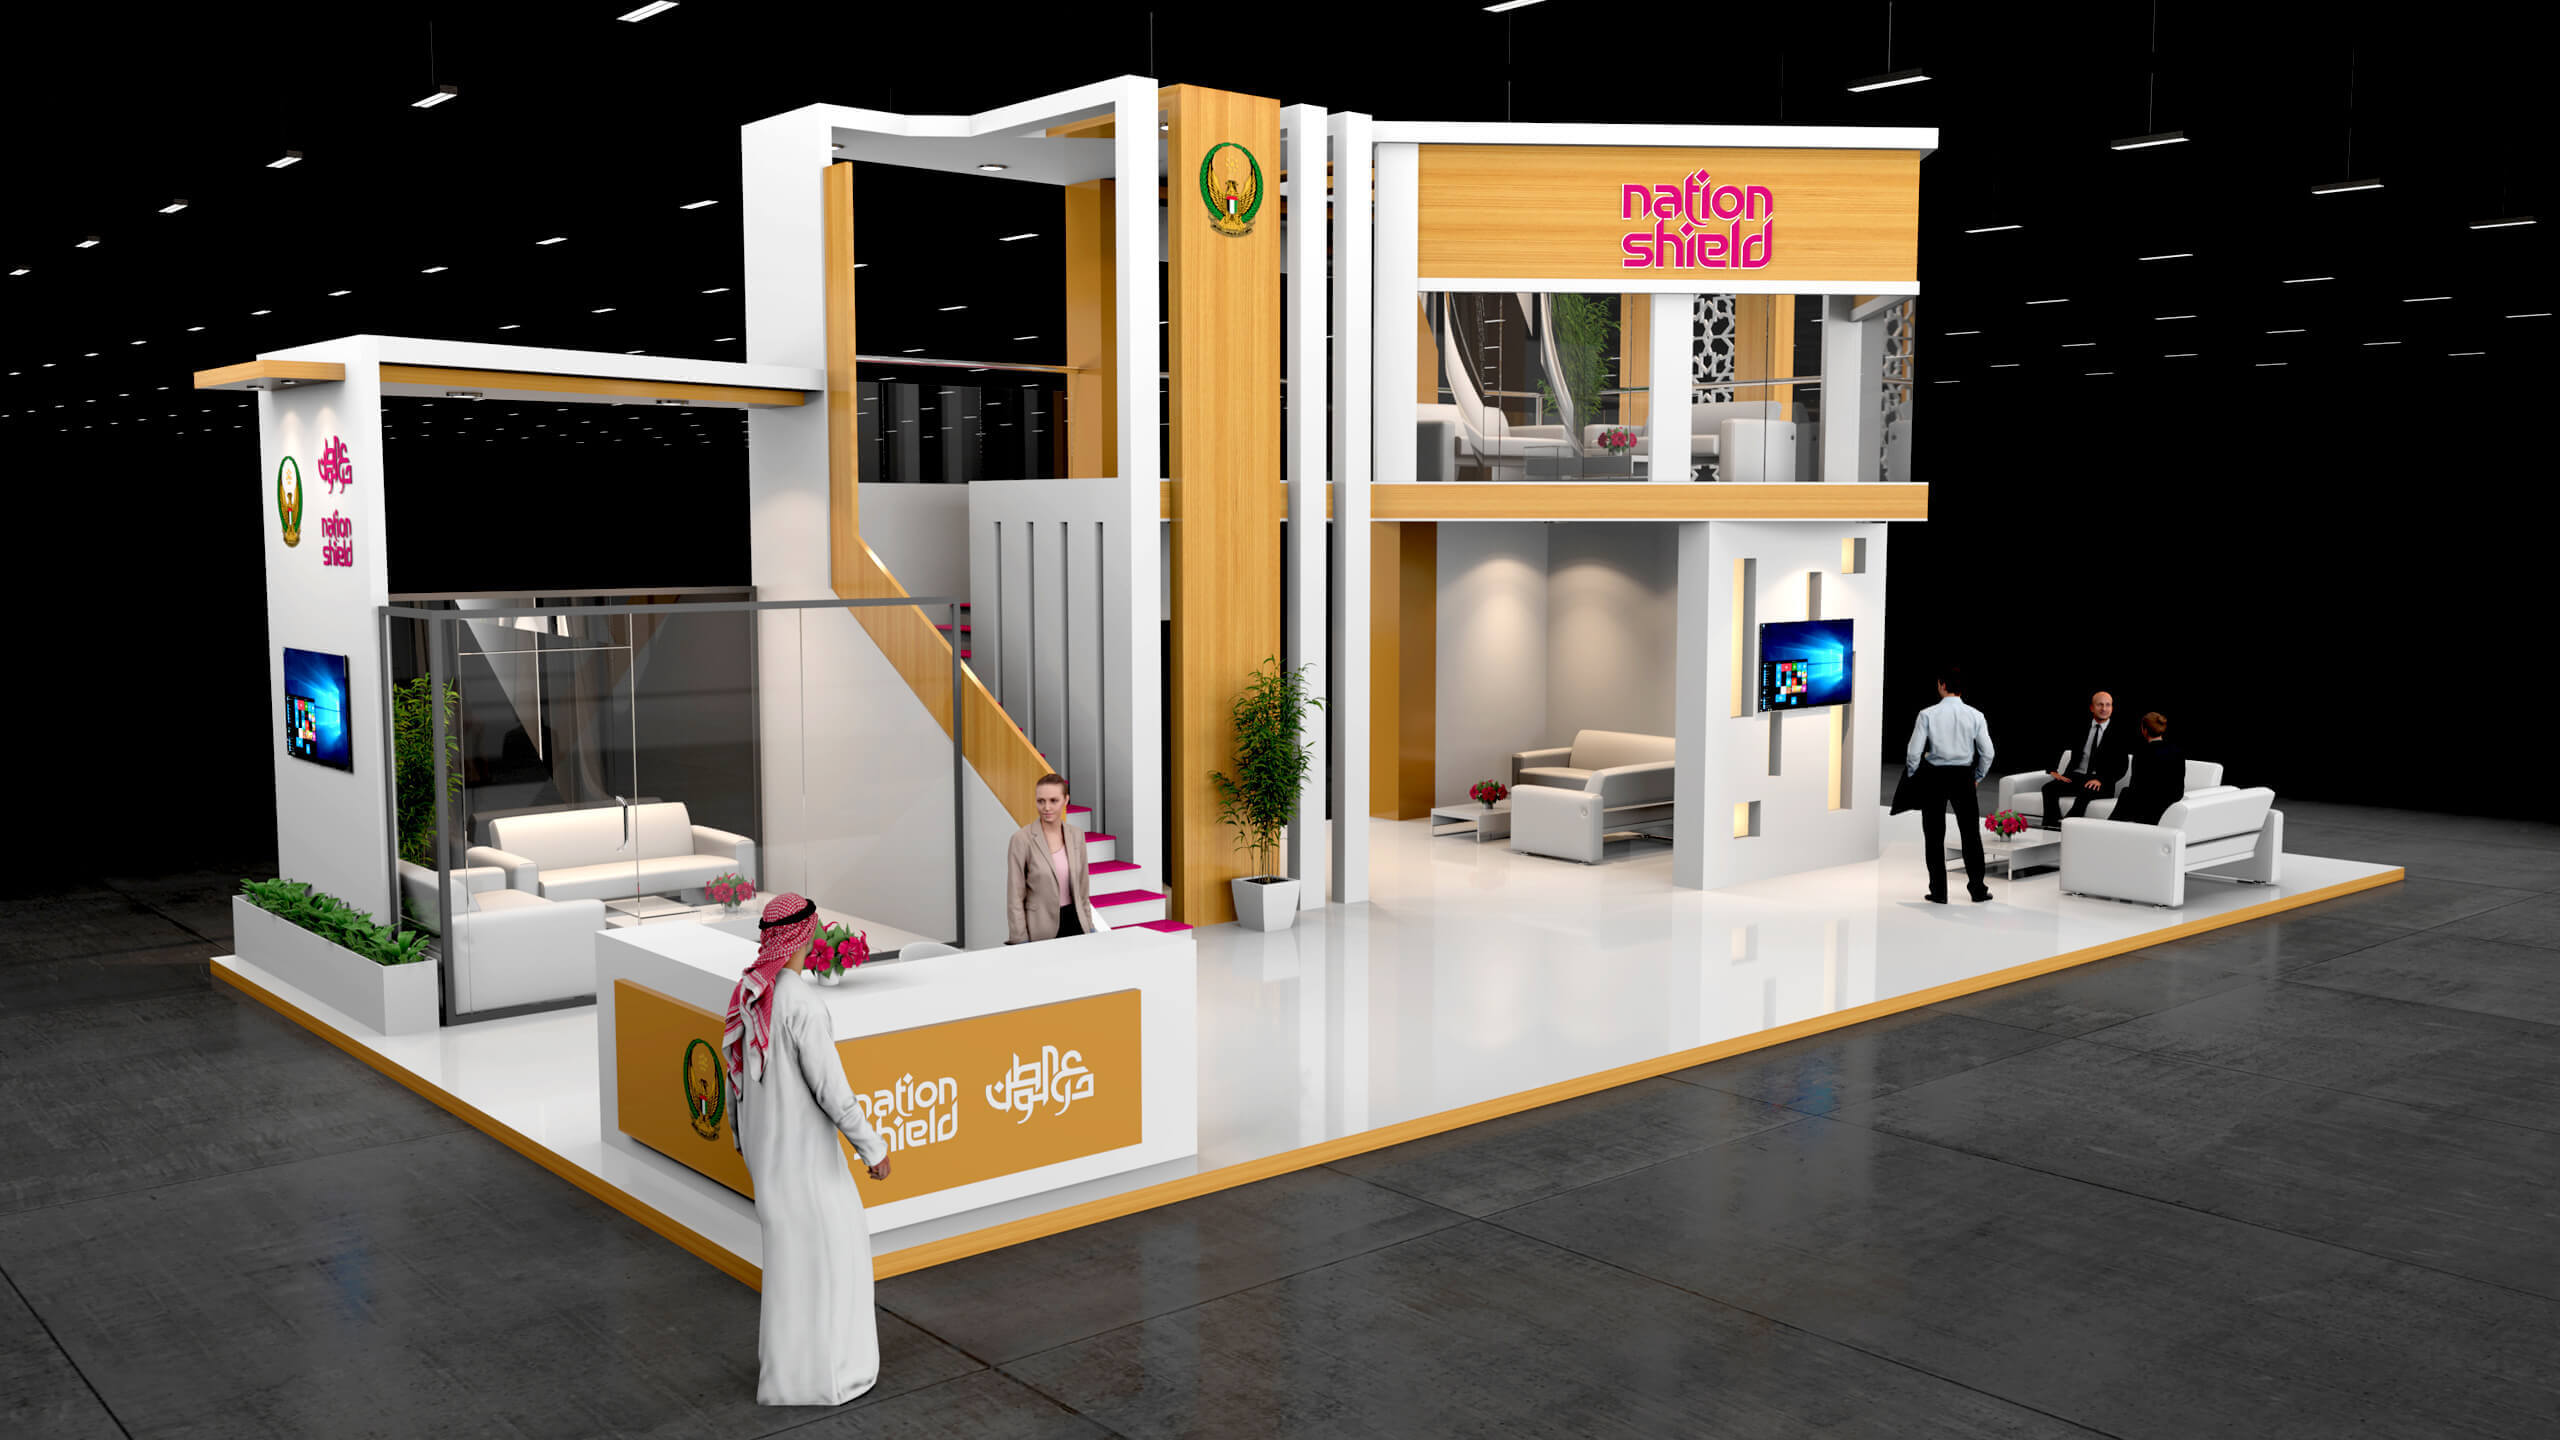 Flexible Exhibition Stands : Exhibition display stands fabrication competency of ndigitec